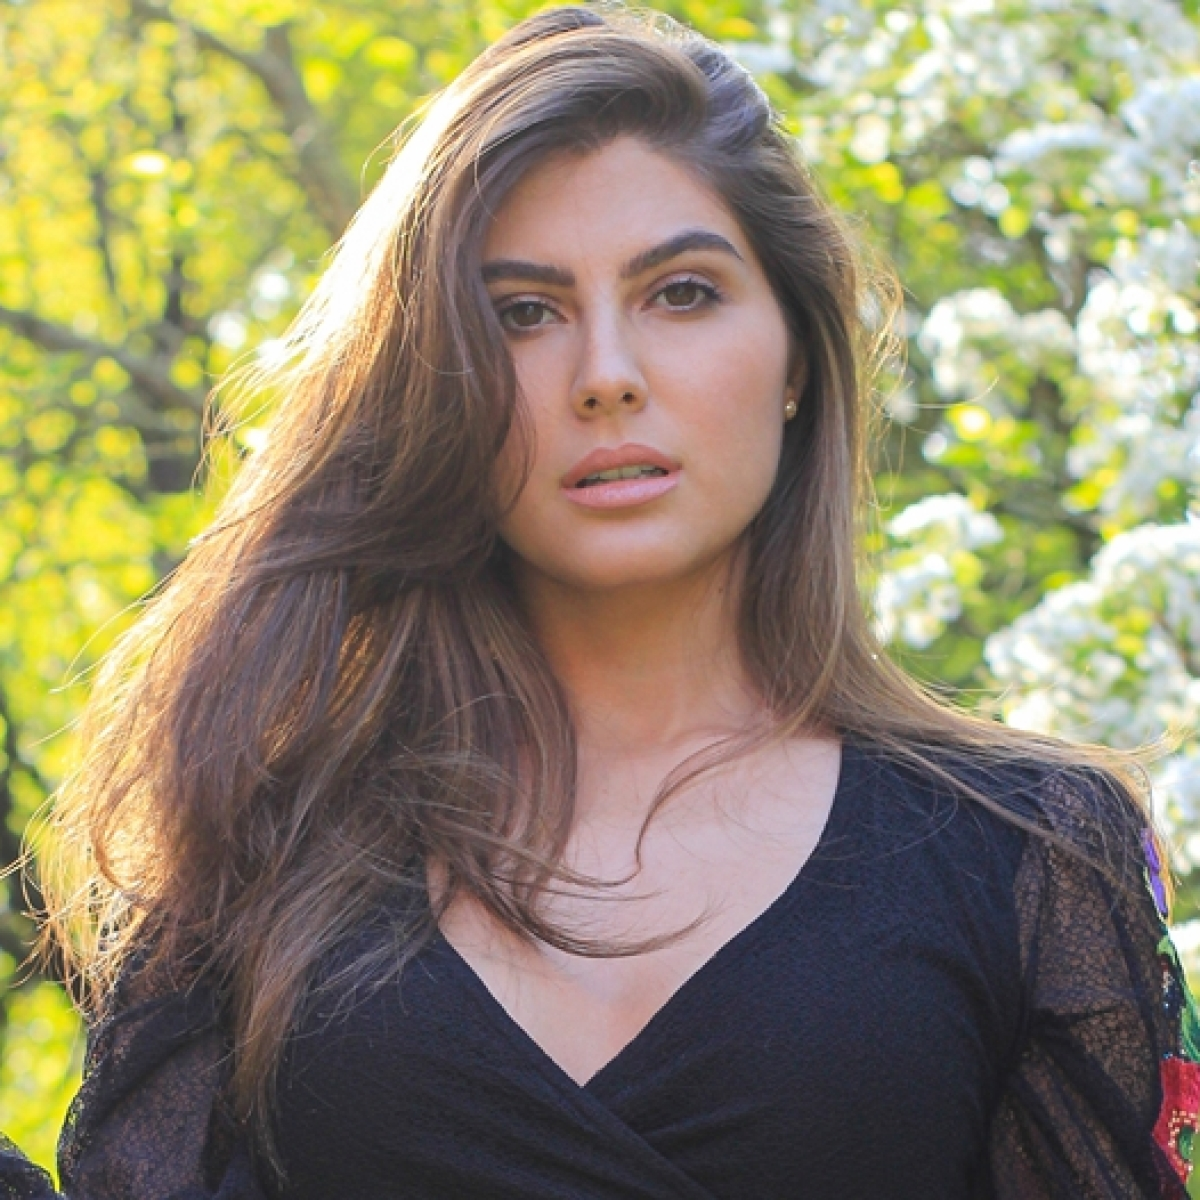 'Have been paying everyone despite no income': 'Sacred Games' actress Elnaaz Norouzi on coping with COVID-19 pandemic